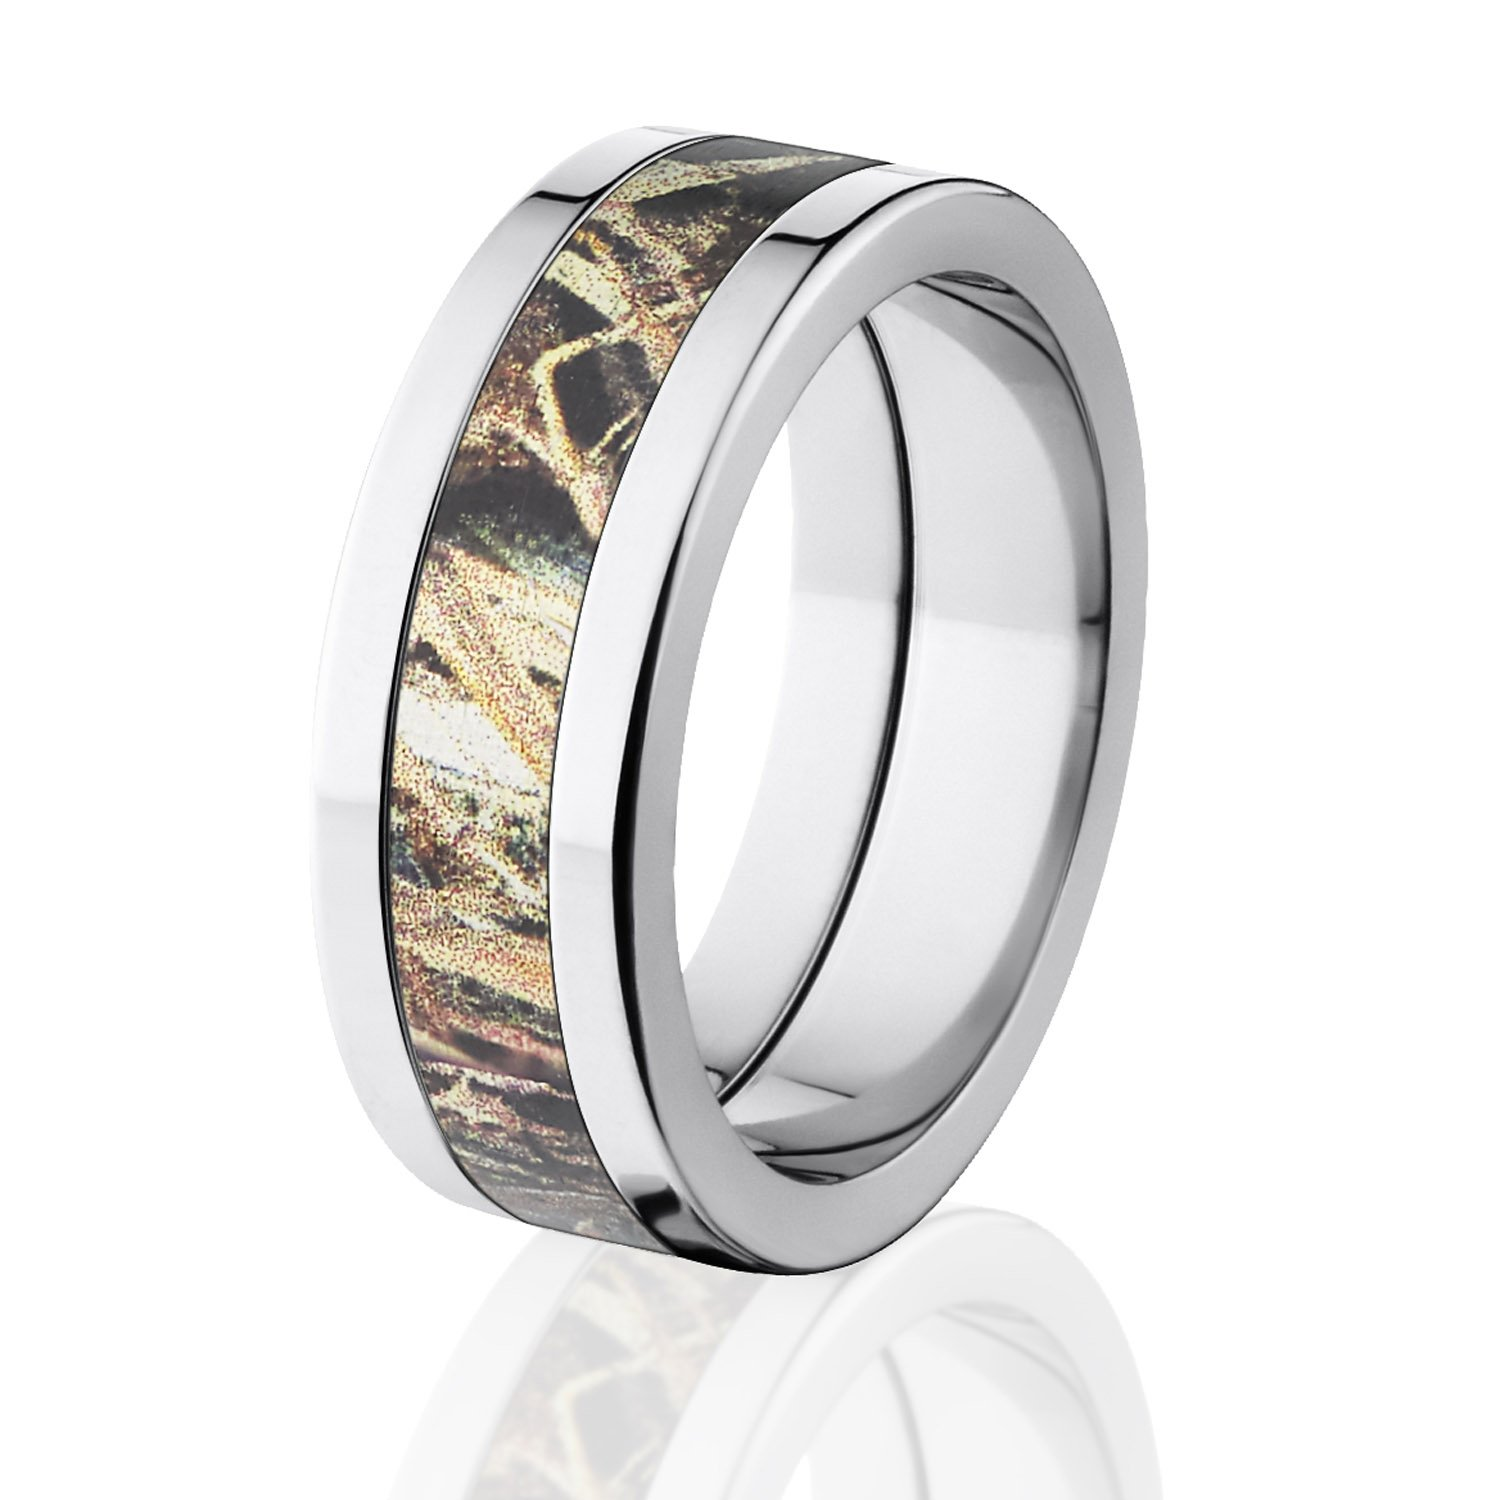 Duck Blind Camo Wedding Rings Mossy Oak Camouflage Bands USA Made